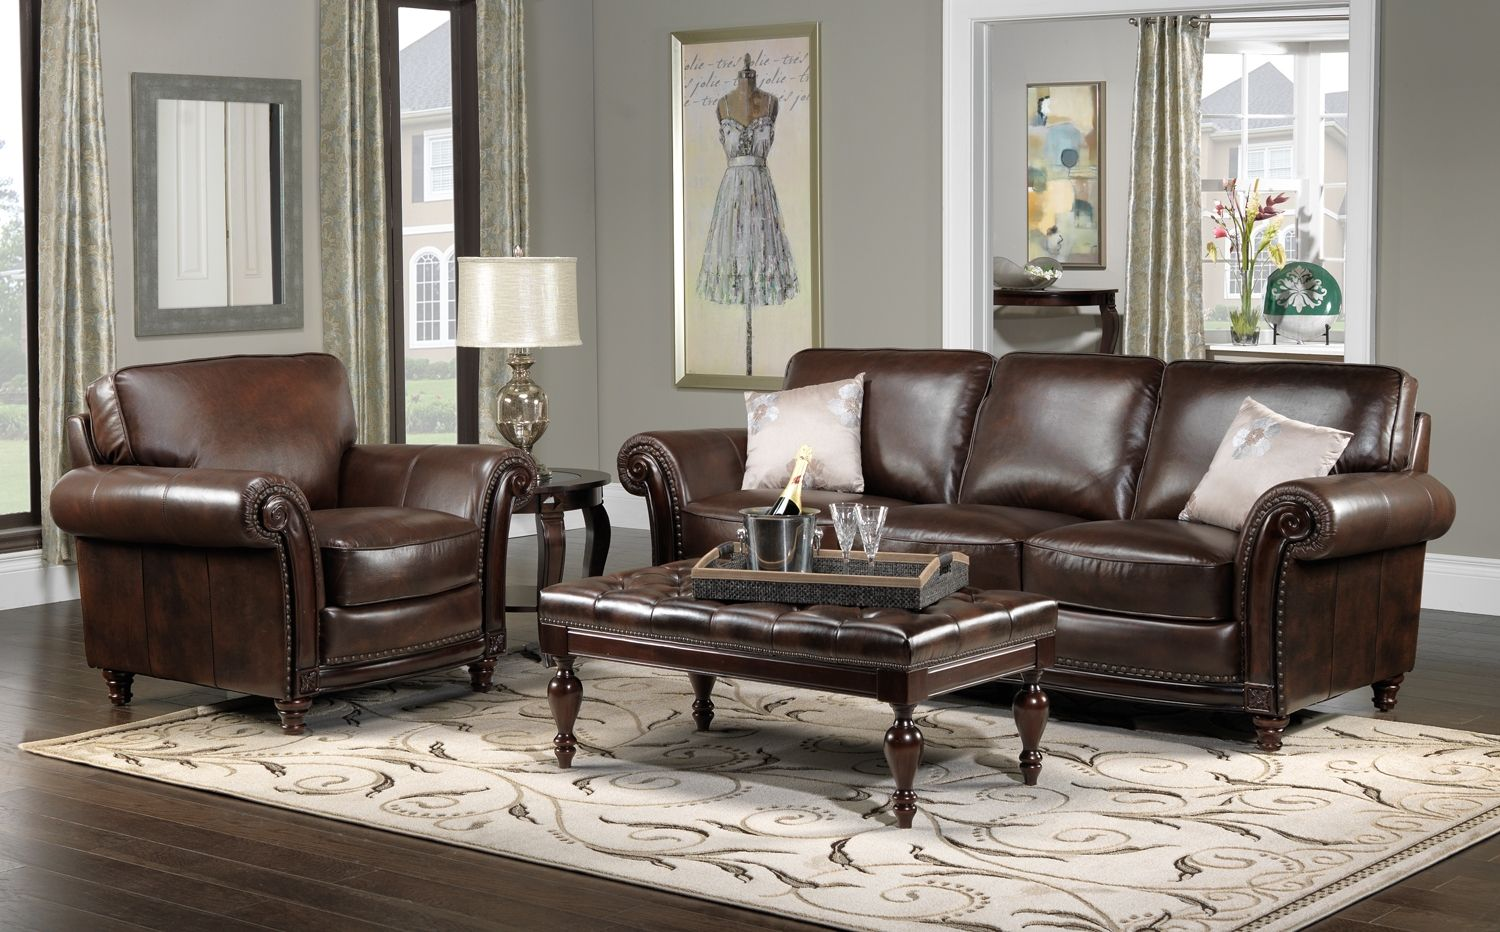 Dream House Decor Ideas For Brown Leather Furniture Gngkxz Decorating With Sofa